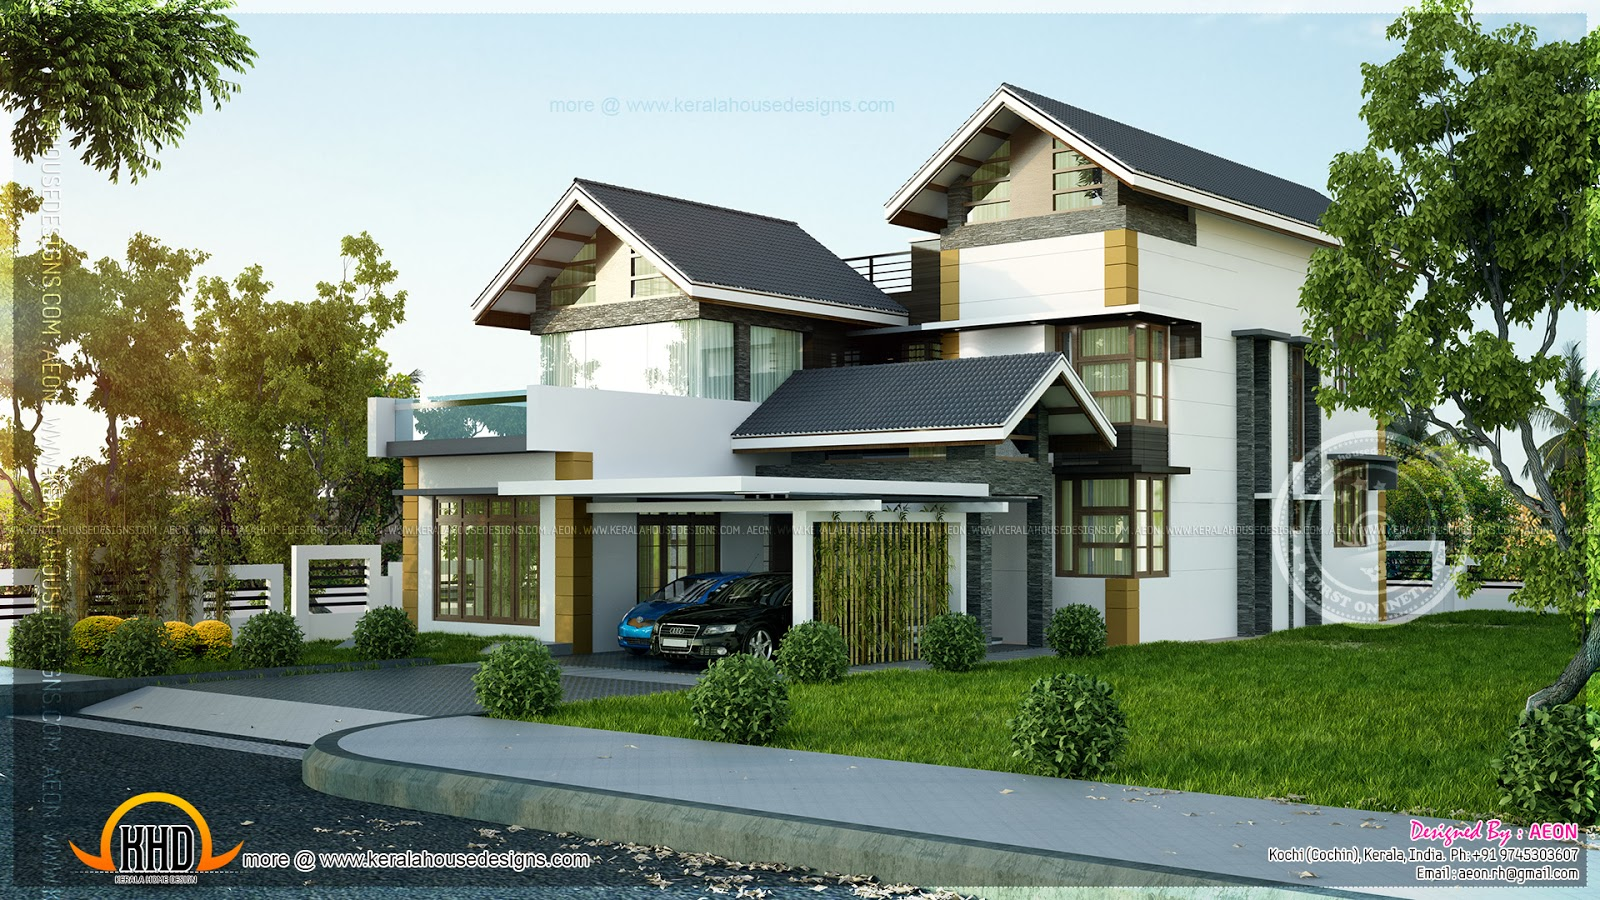 Siddu buzz online kerala home design for Contemporary roof